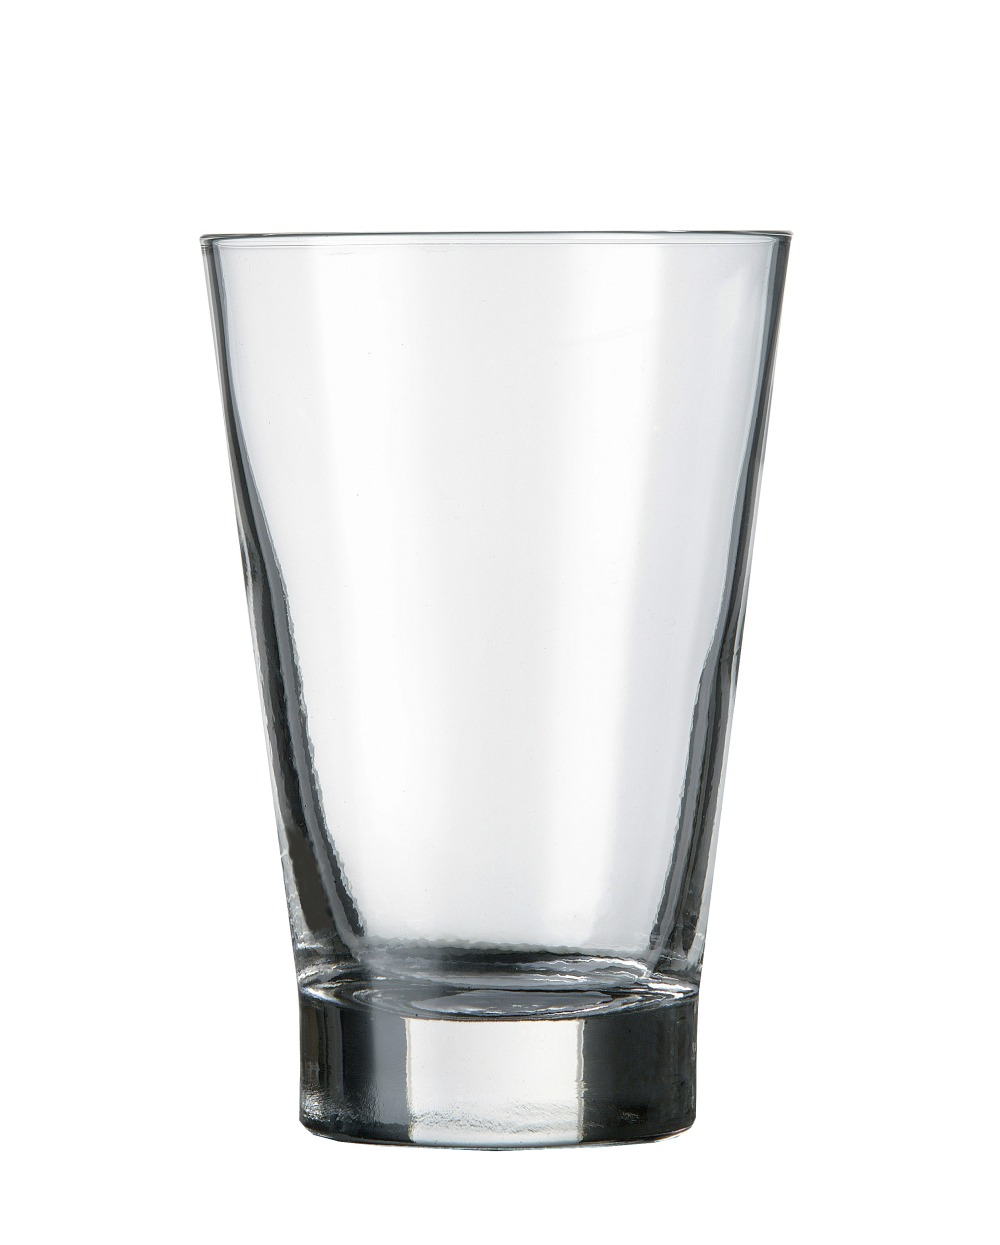 royal_leerdam_longdrinkglas_york_36cl.jpg